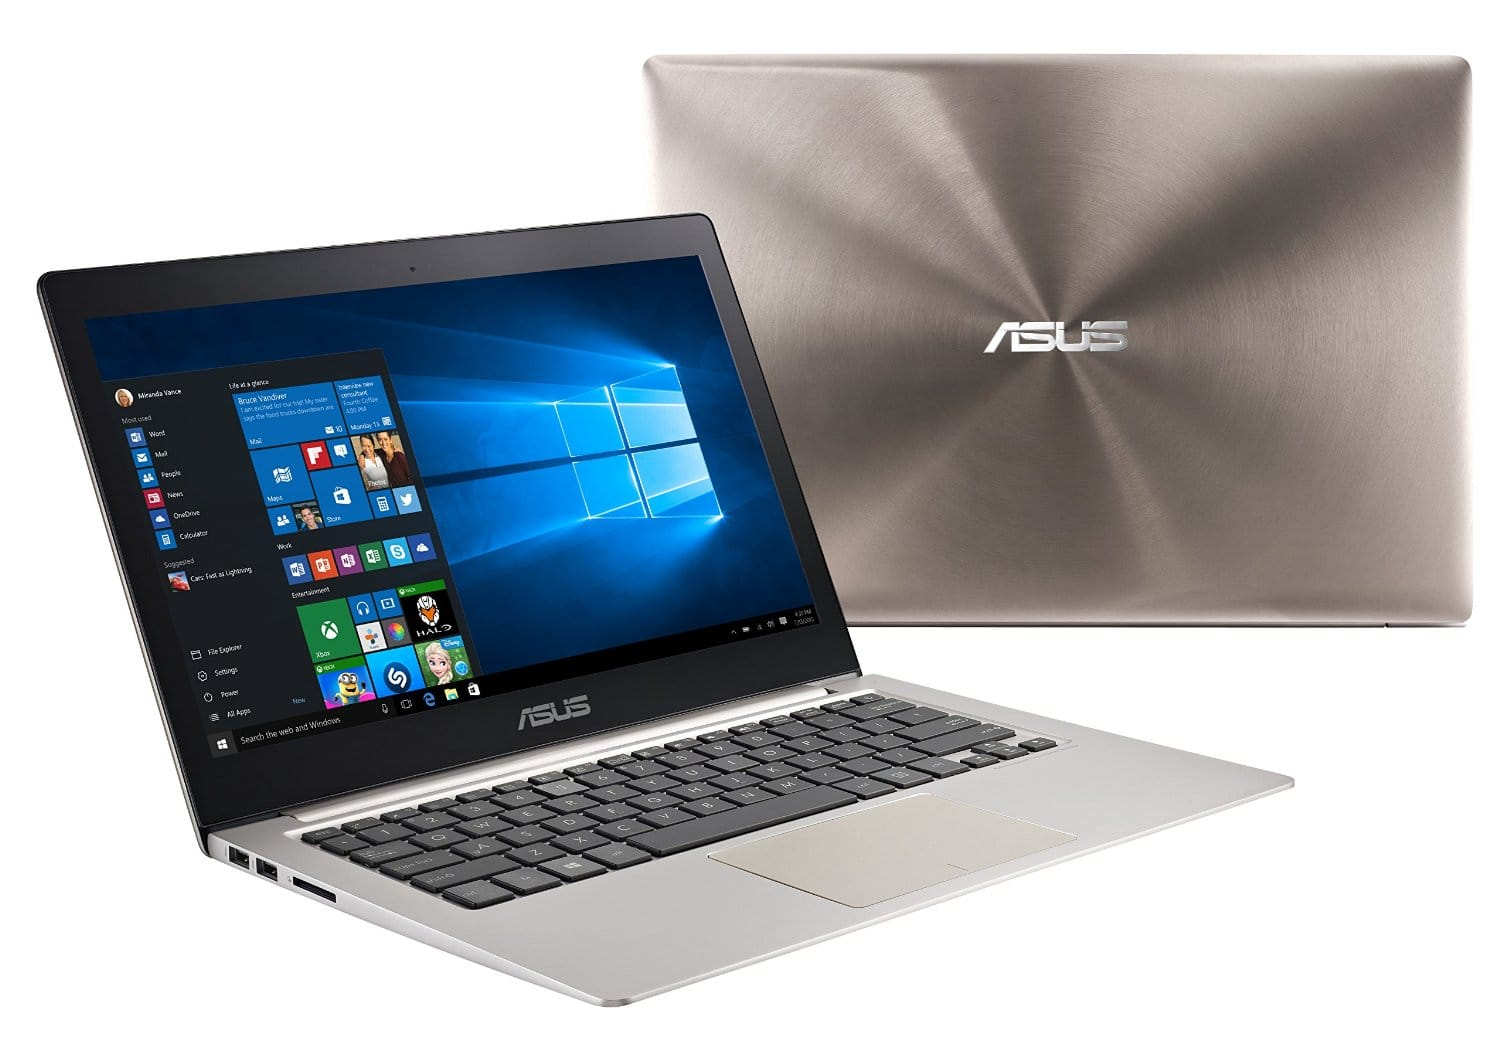 """ASUS ZenBook UX303UB-UH74T 6th Gen Core i7 6500U, 12 GB Ram, GT940M 2 GB, 512 GB SSD, 13.3"""" QHD+ at $1089 + Tax in Amazon with F/S"""